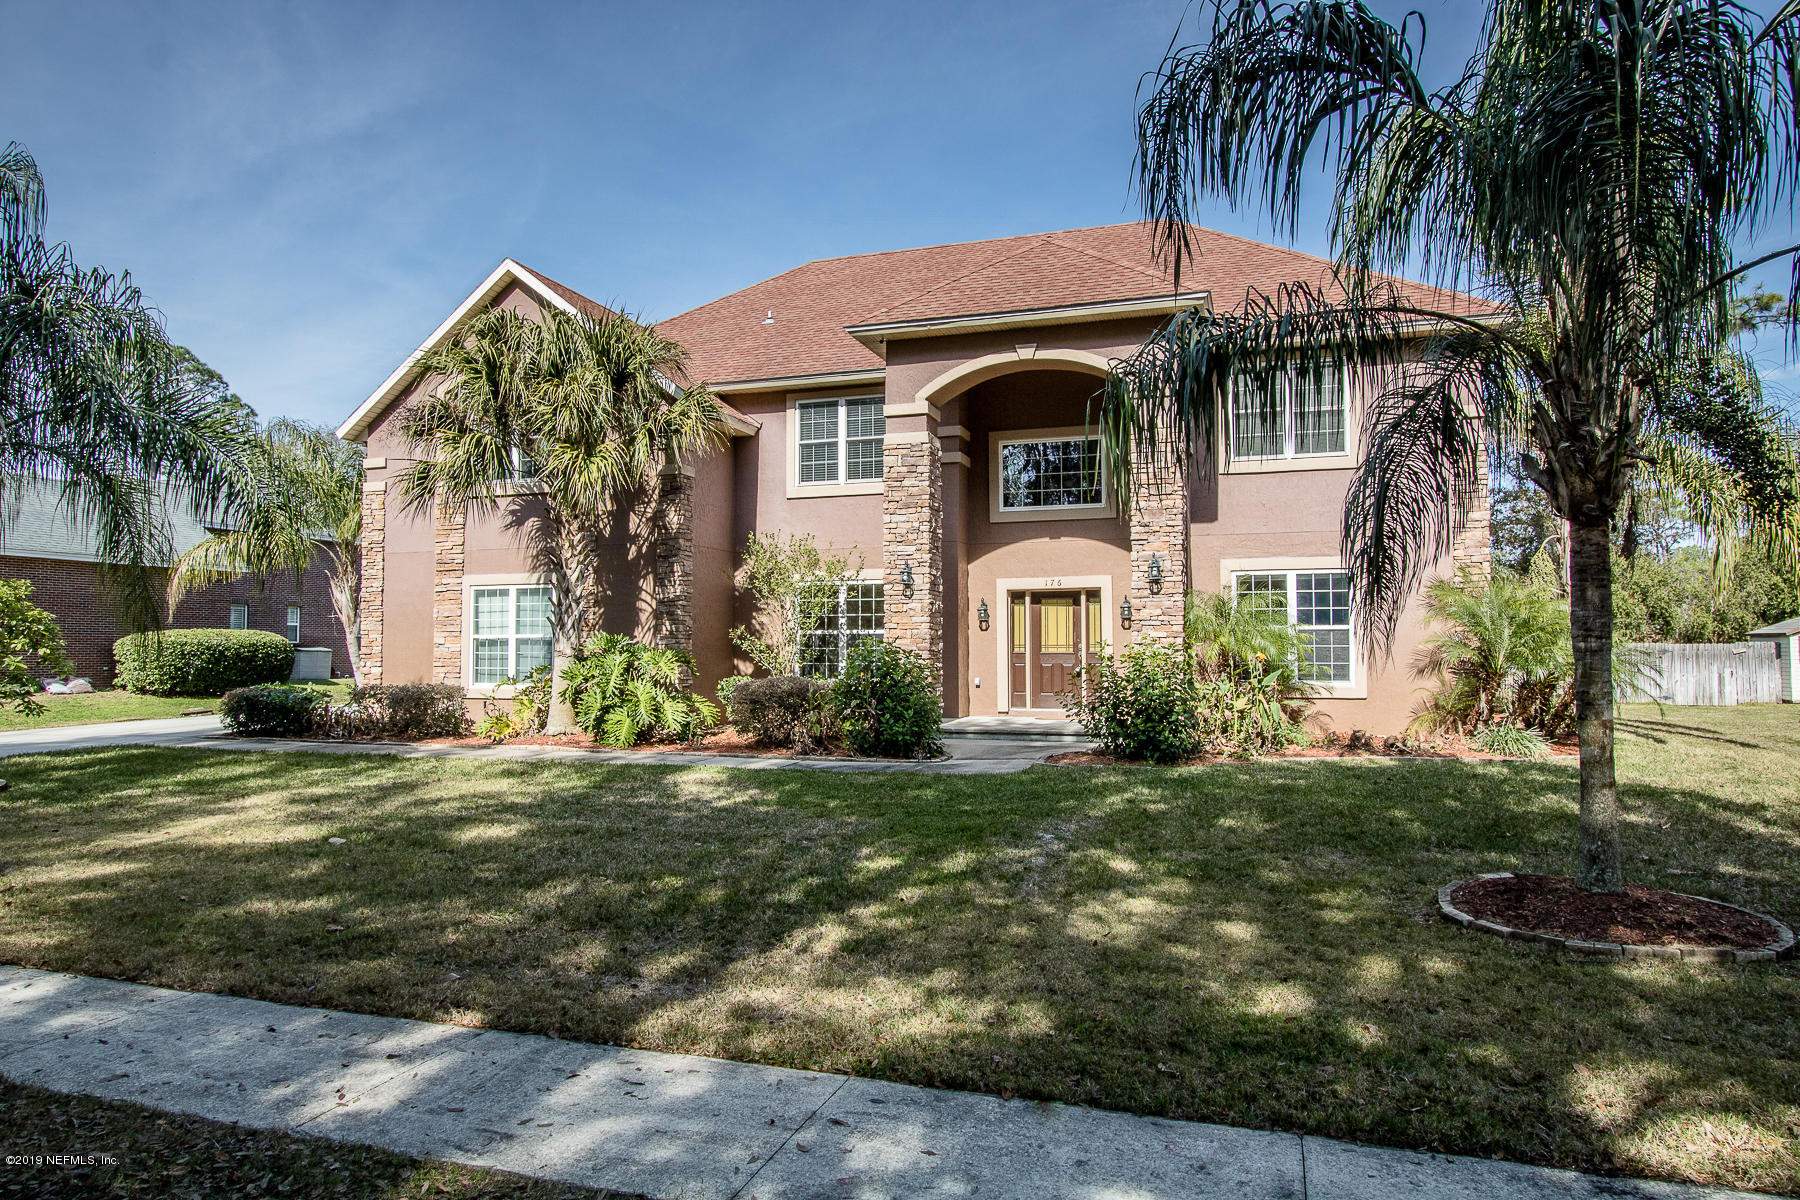 176  MALLEY COVE LN, Fleming Island, Florida